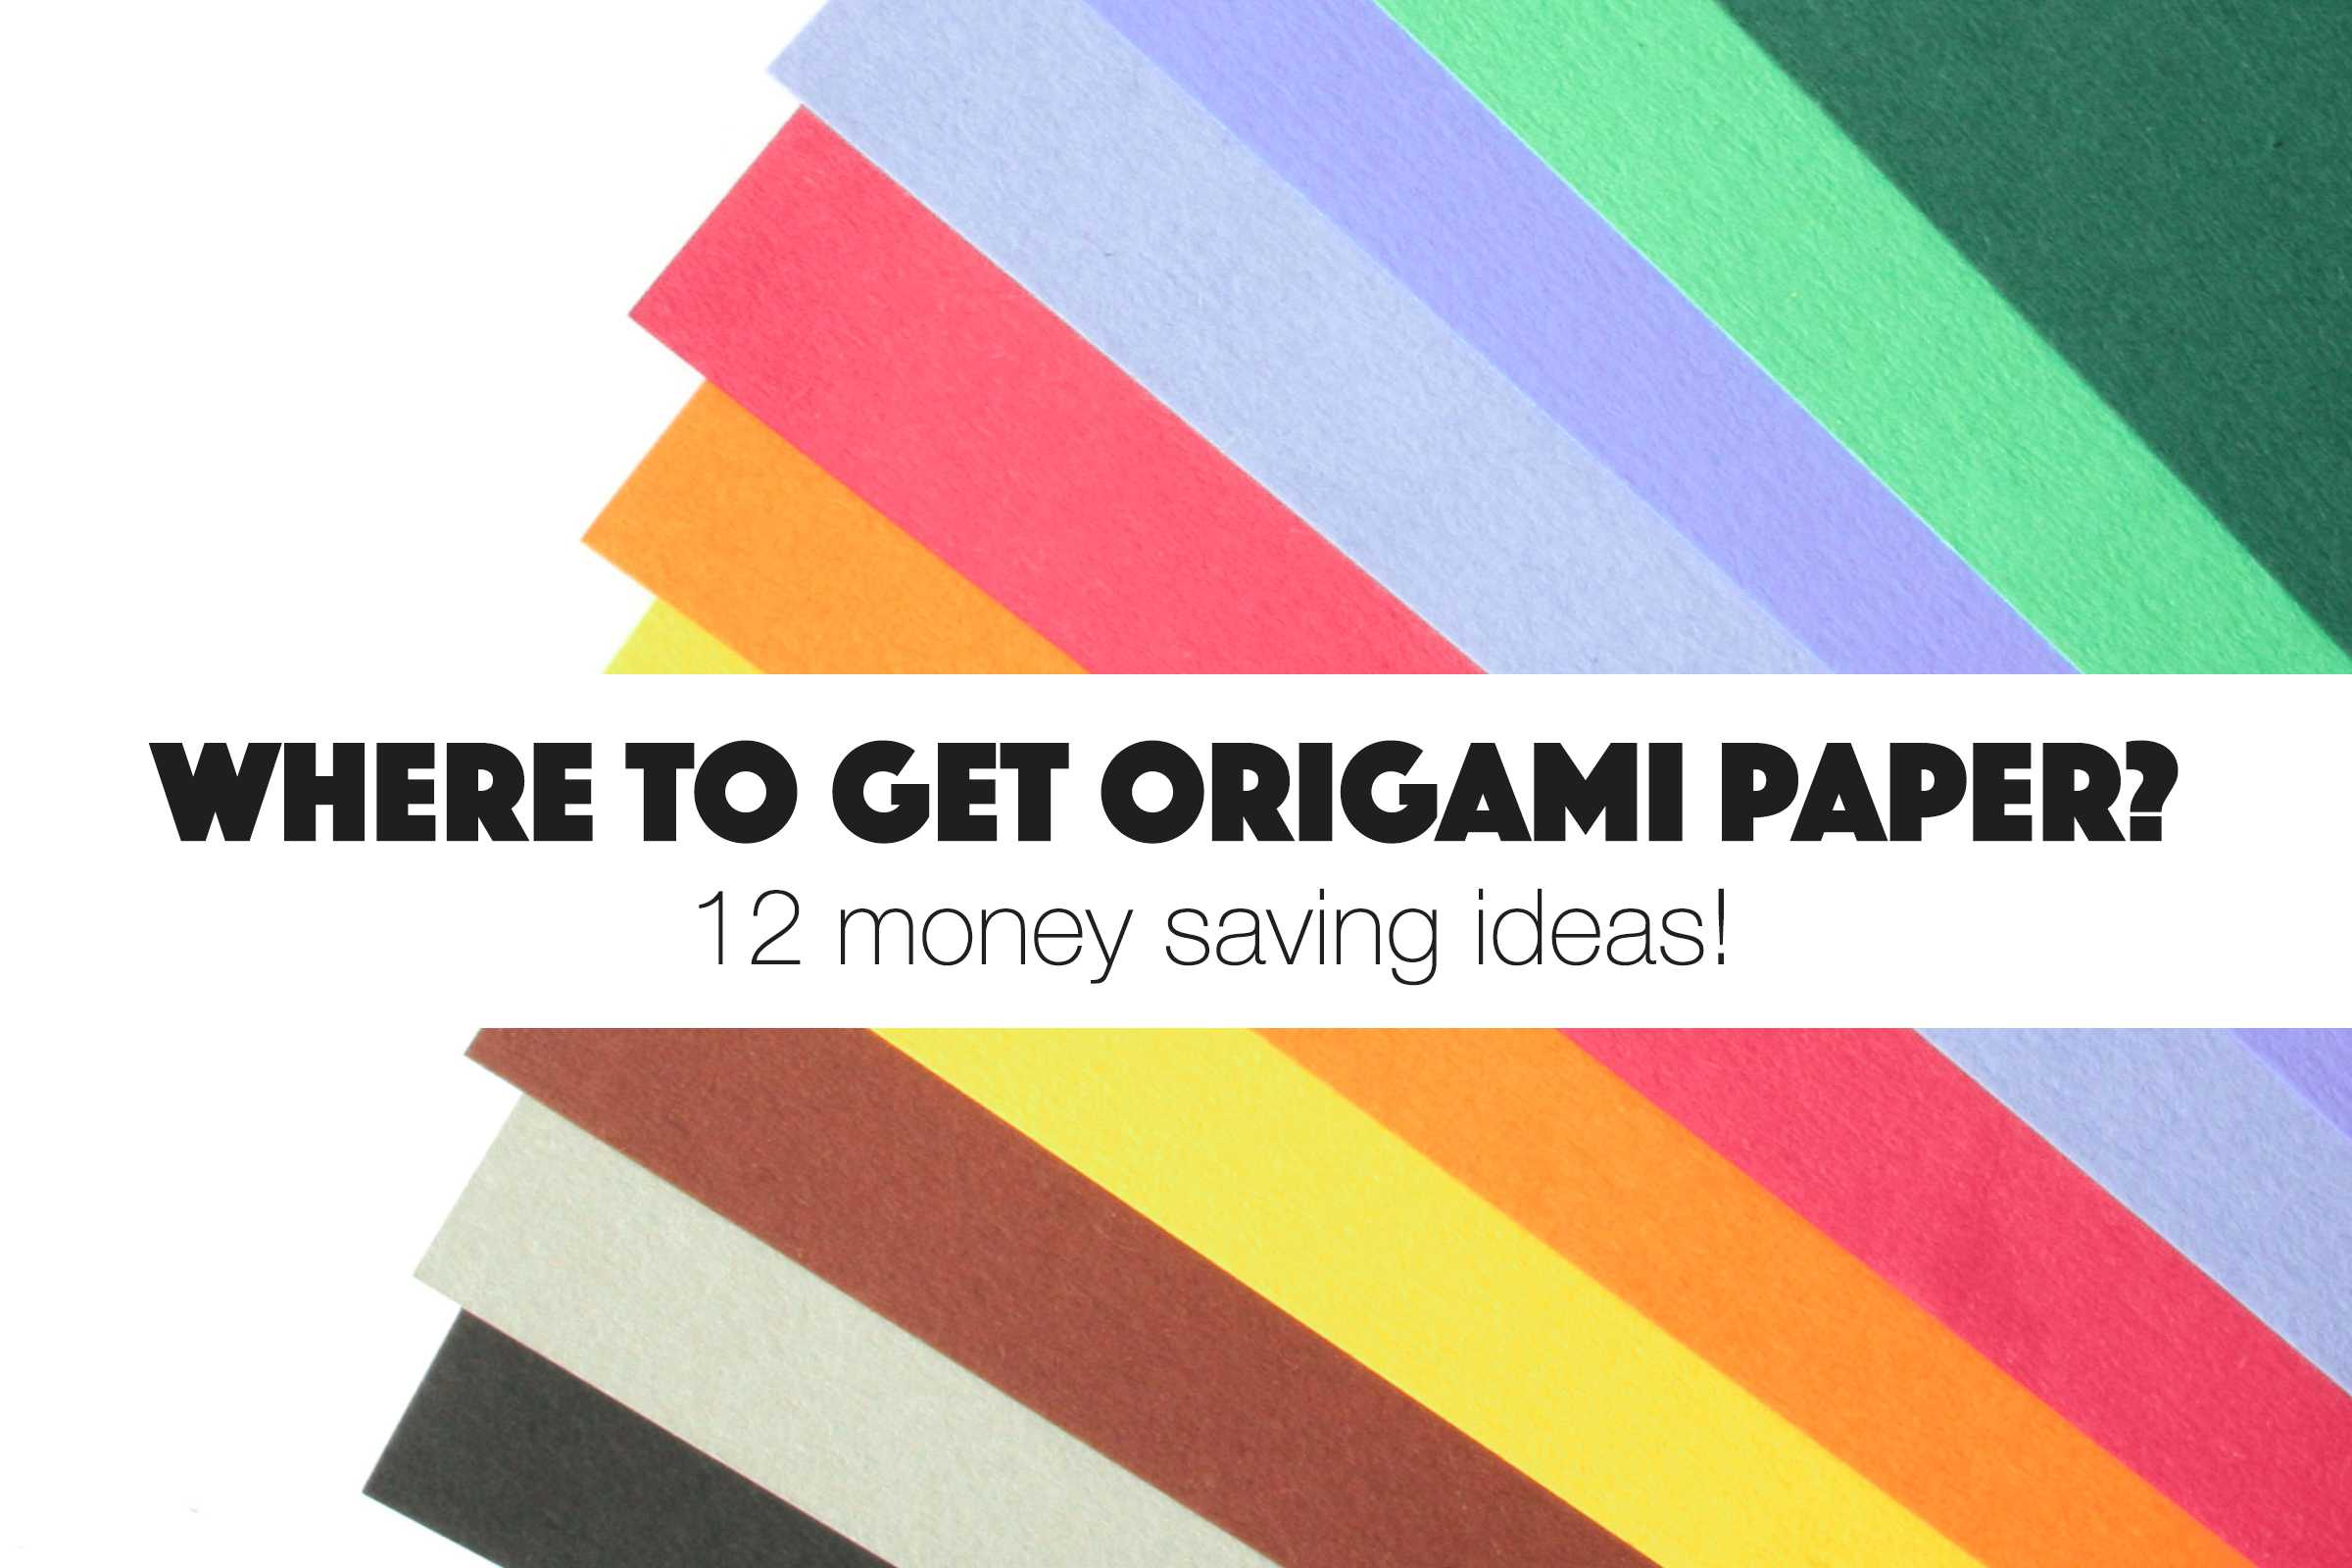 Where to Free Origami Paper Around Your House